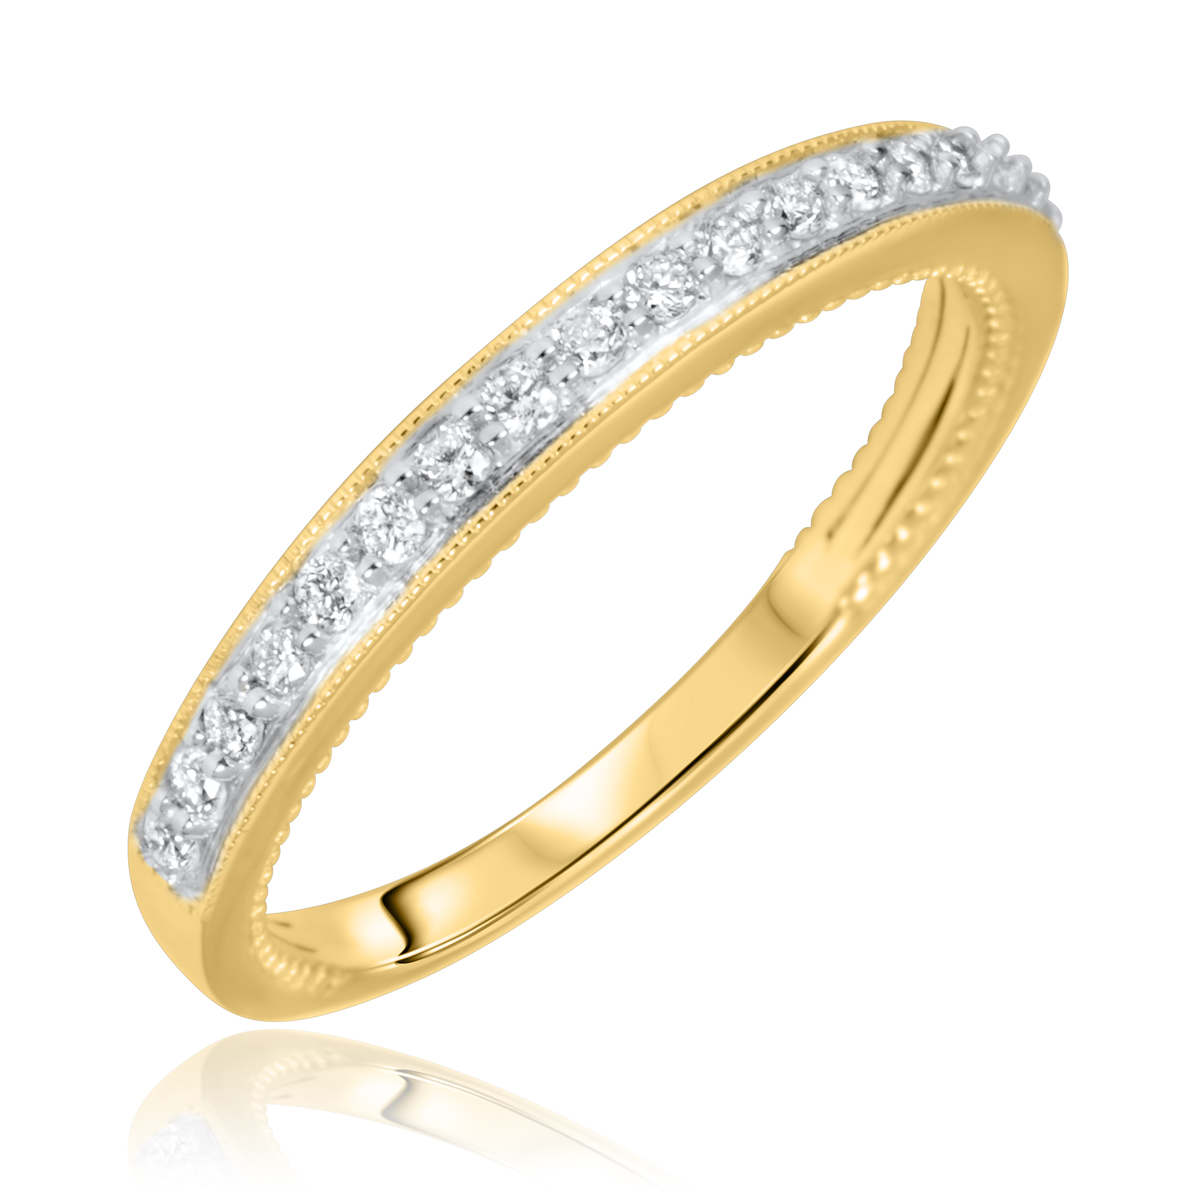 1/5 Carat T.W. Round Cut Diamond Ladies Wedding Band 14K Yellow Gold- Size 8